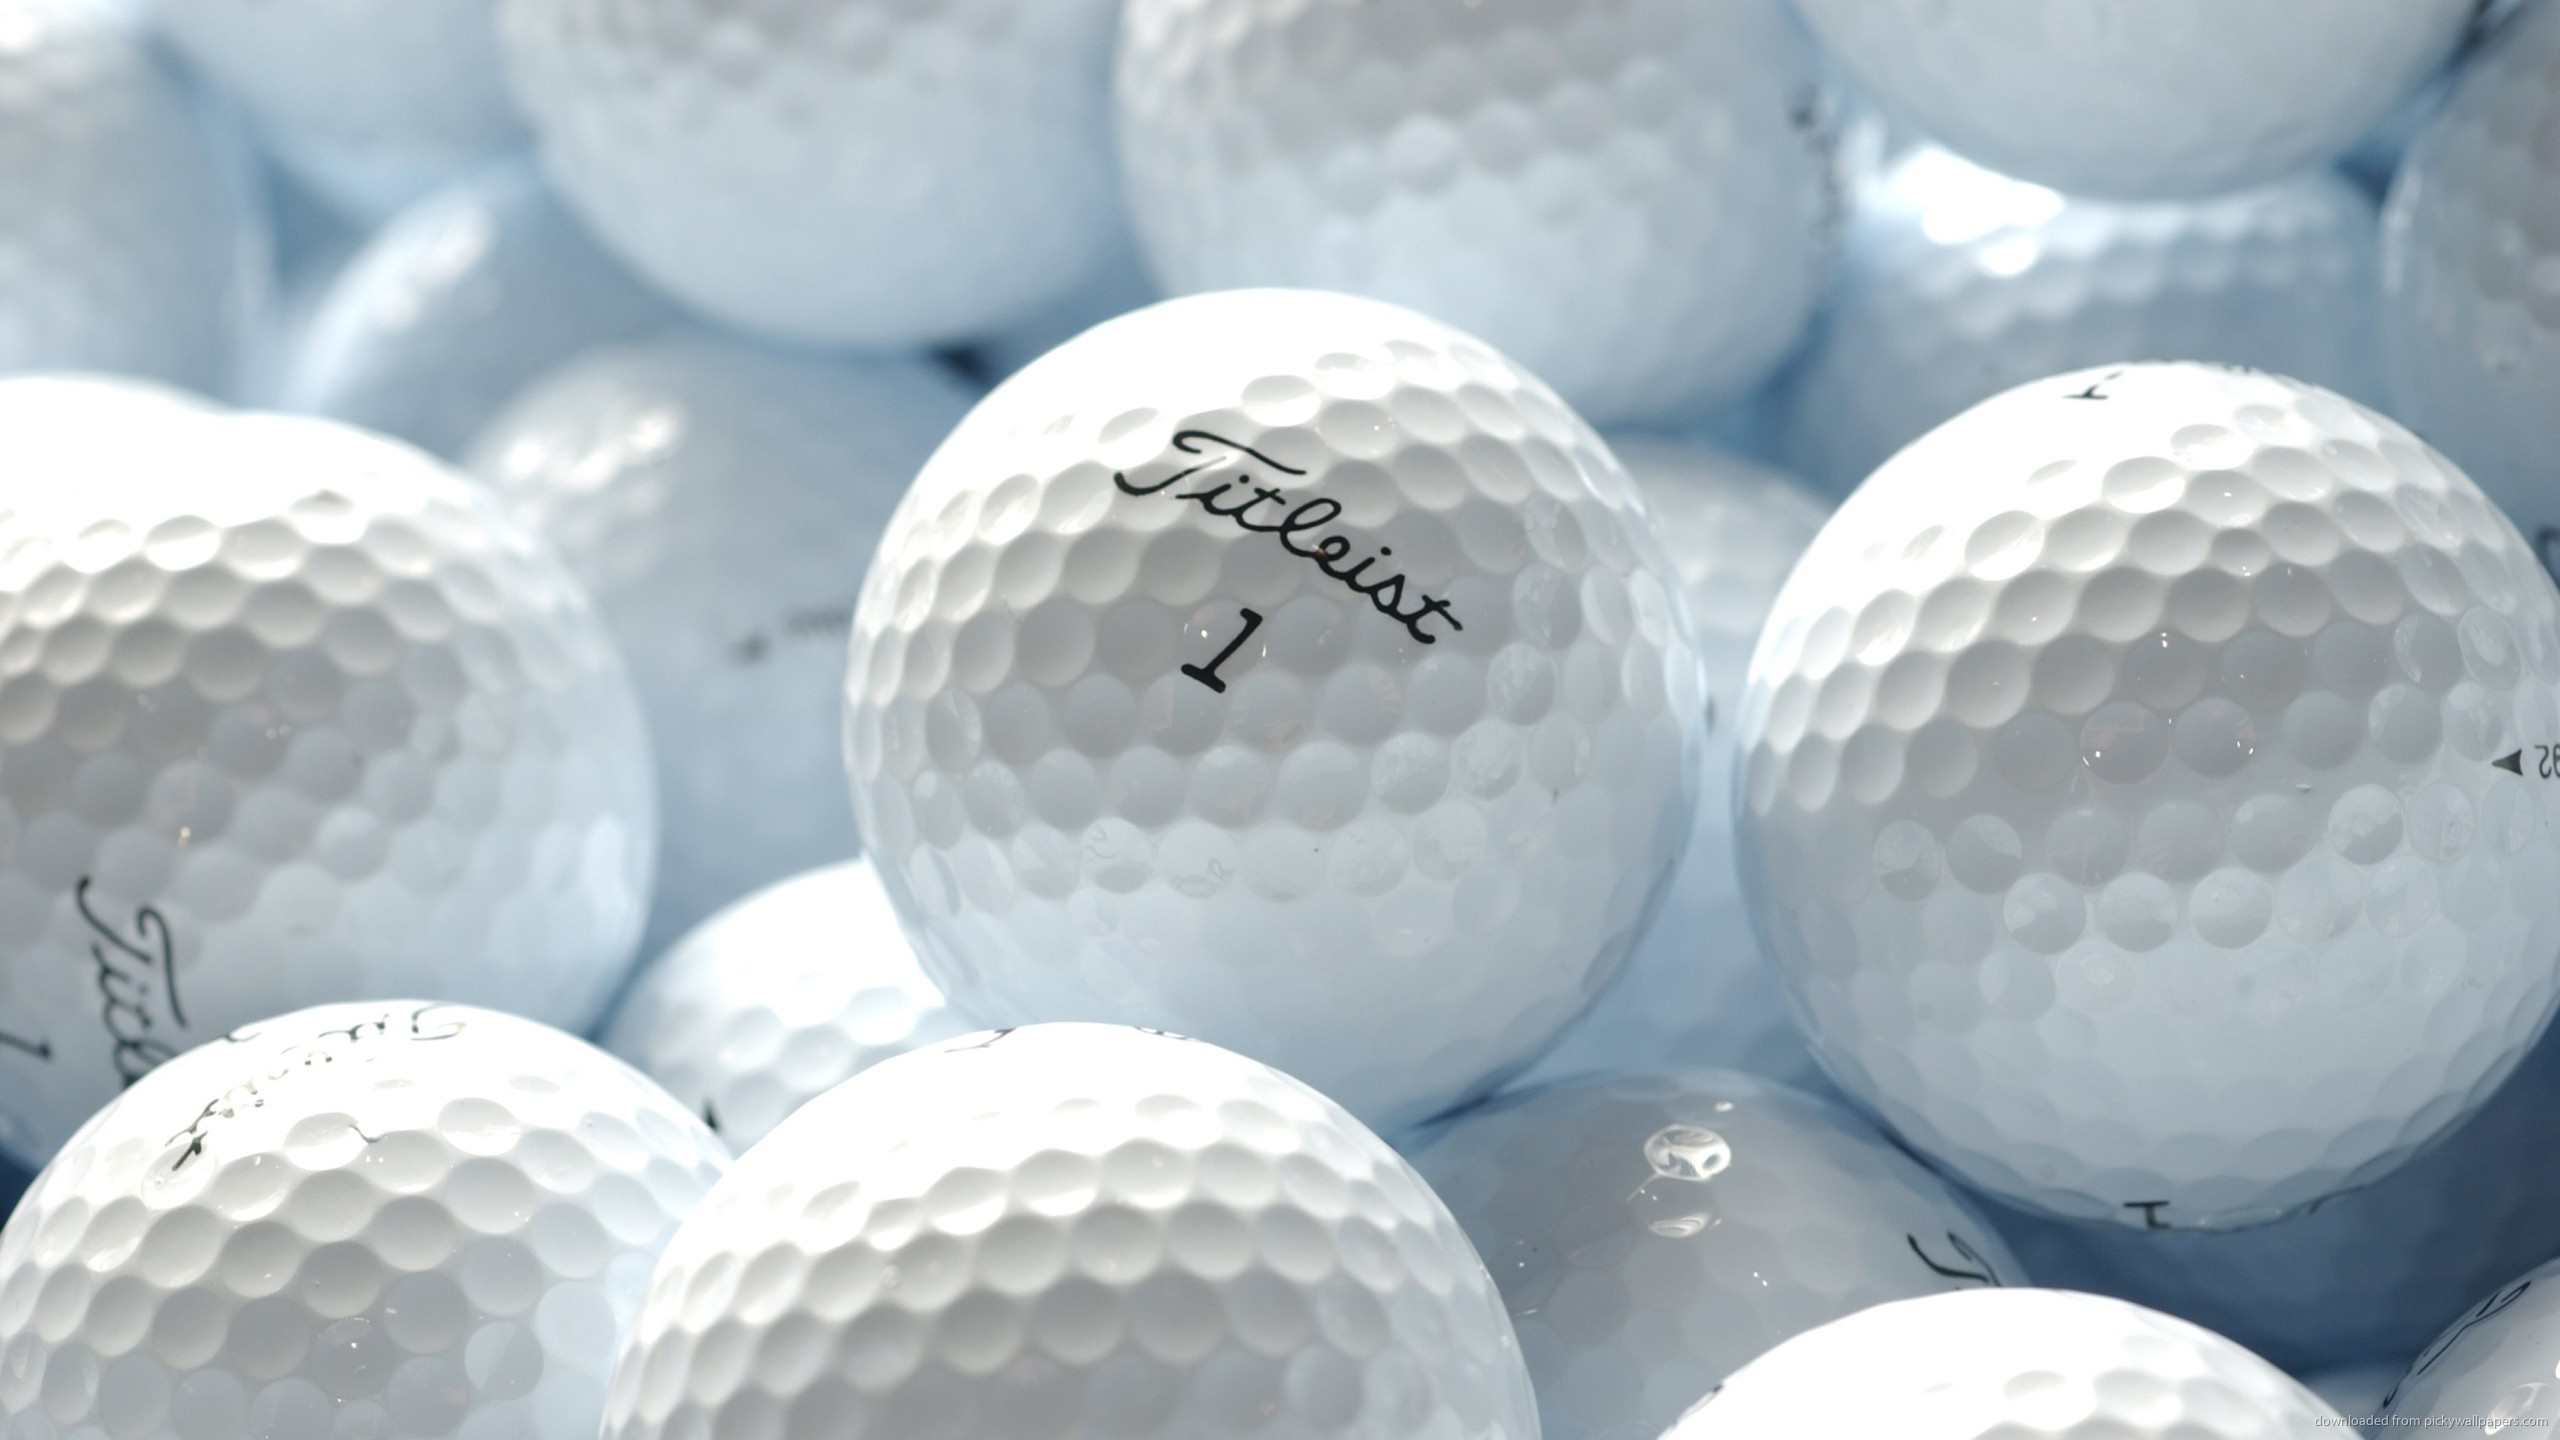 White Titleist Golf Balls HD Desktop Mobile Wallpaper Background 2560x1440